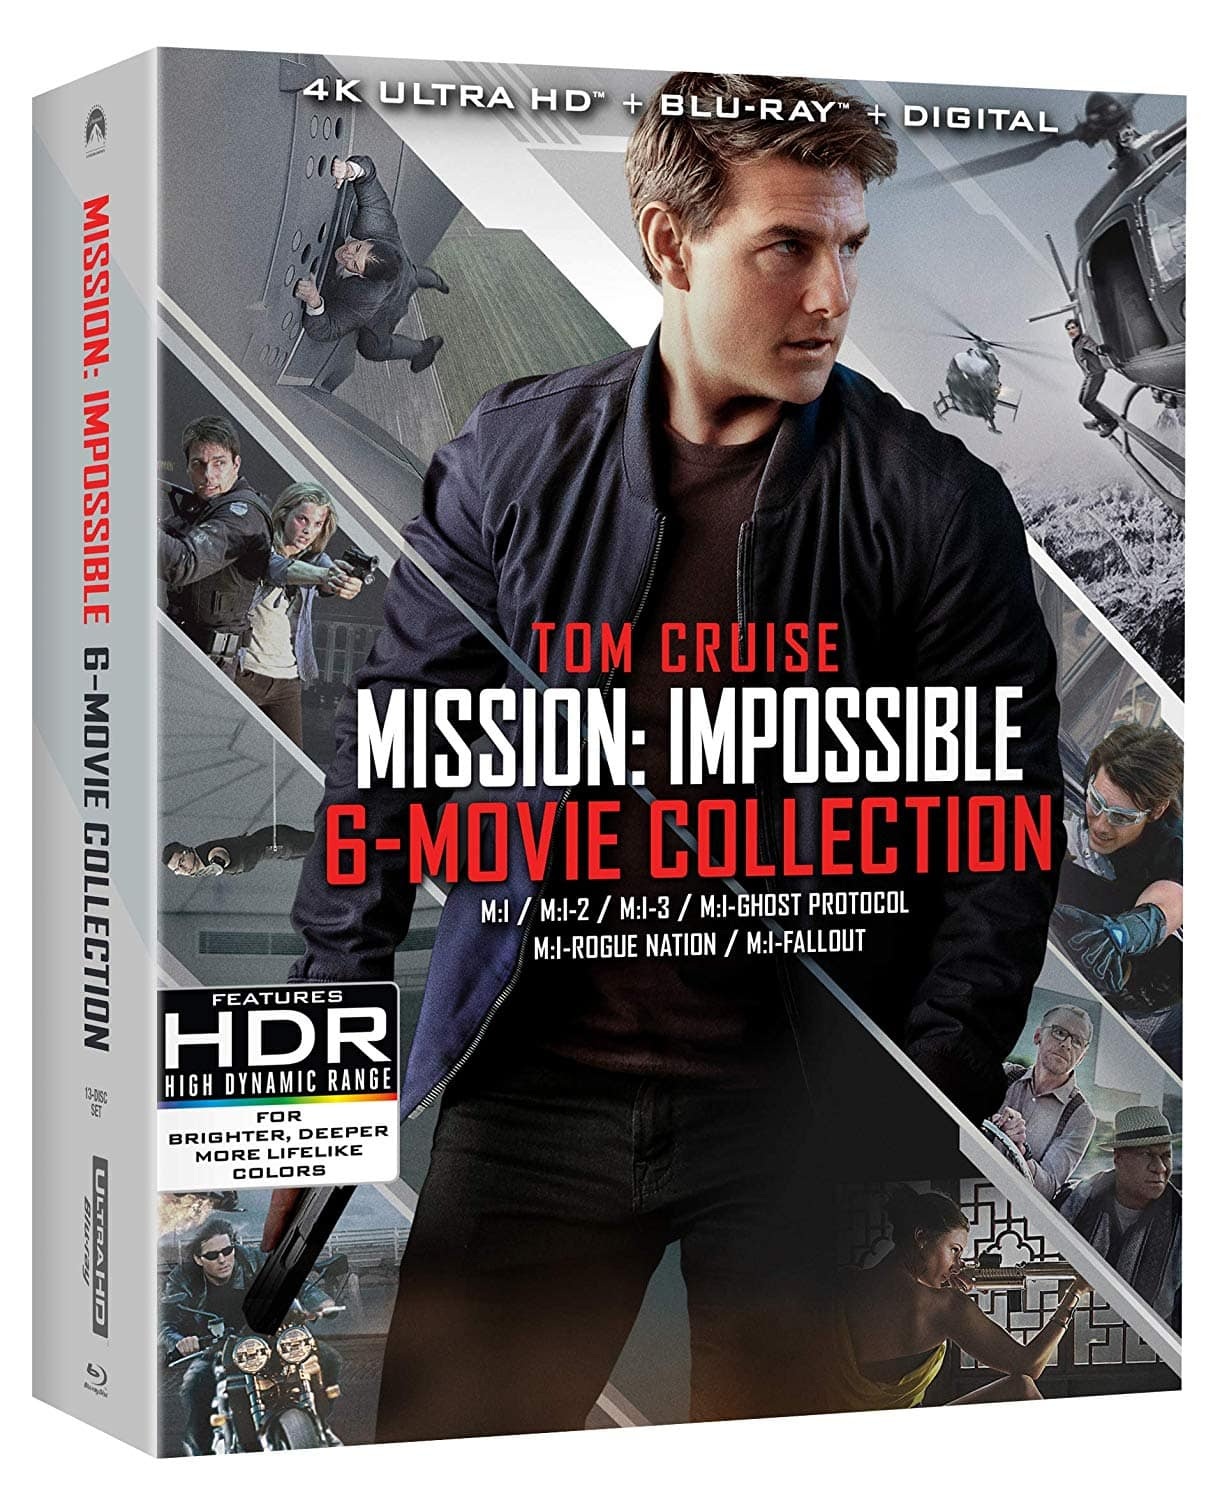 Mission: Impossible 6 Movie Collection 4K Blu-ray (Lowest Price Offered $37.99)